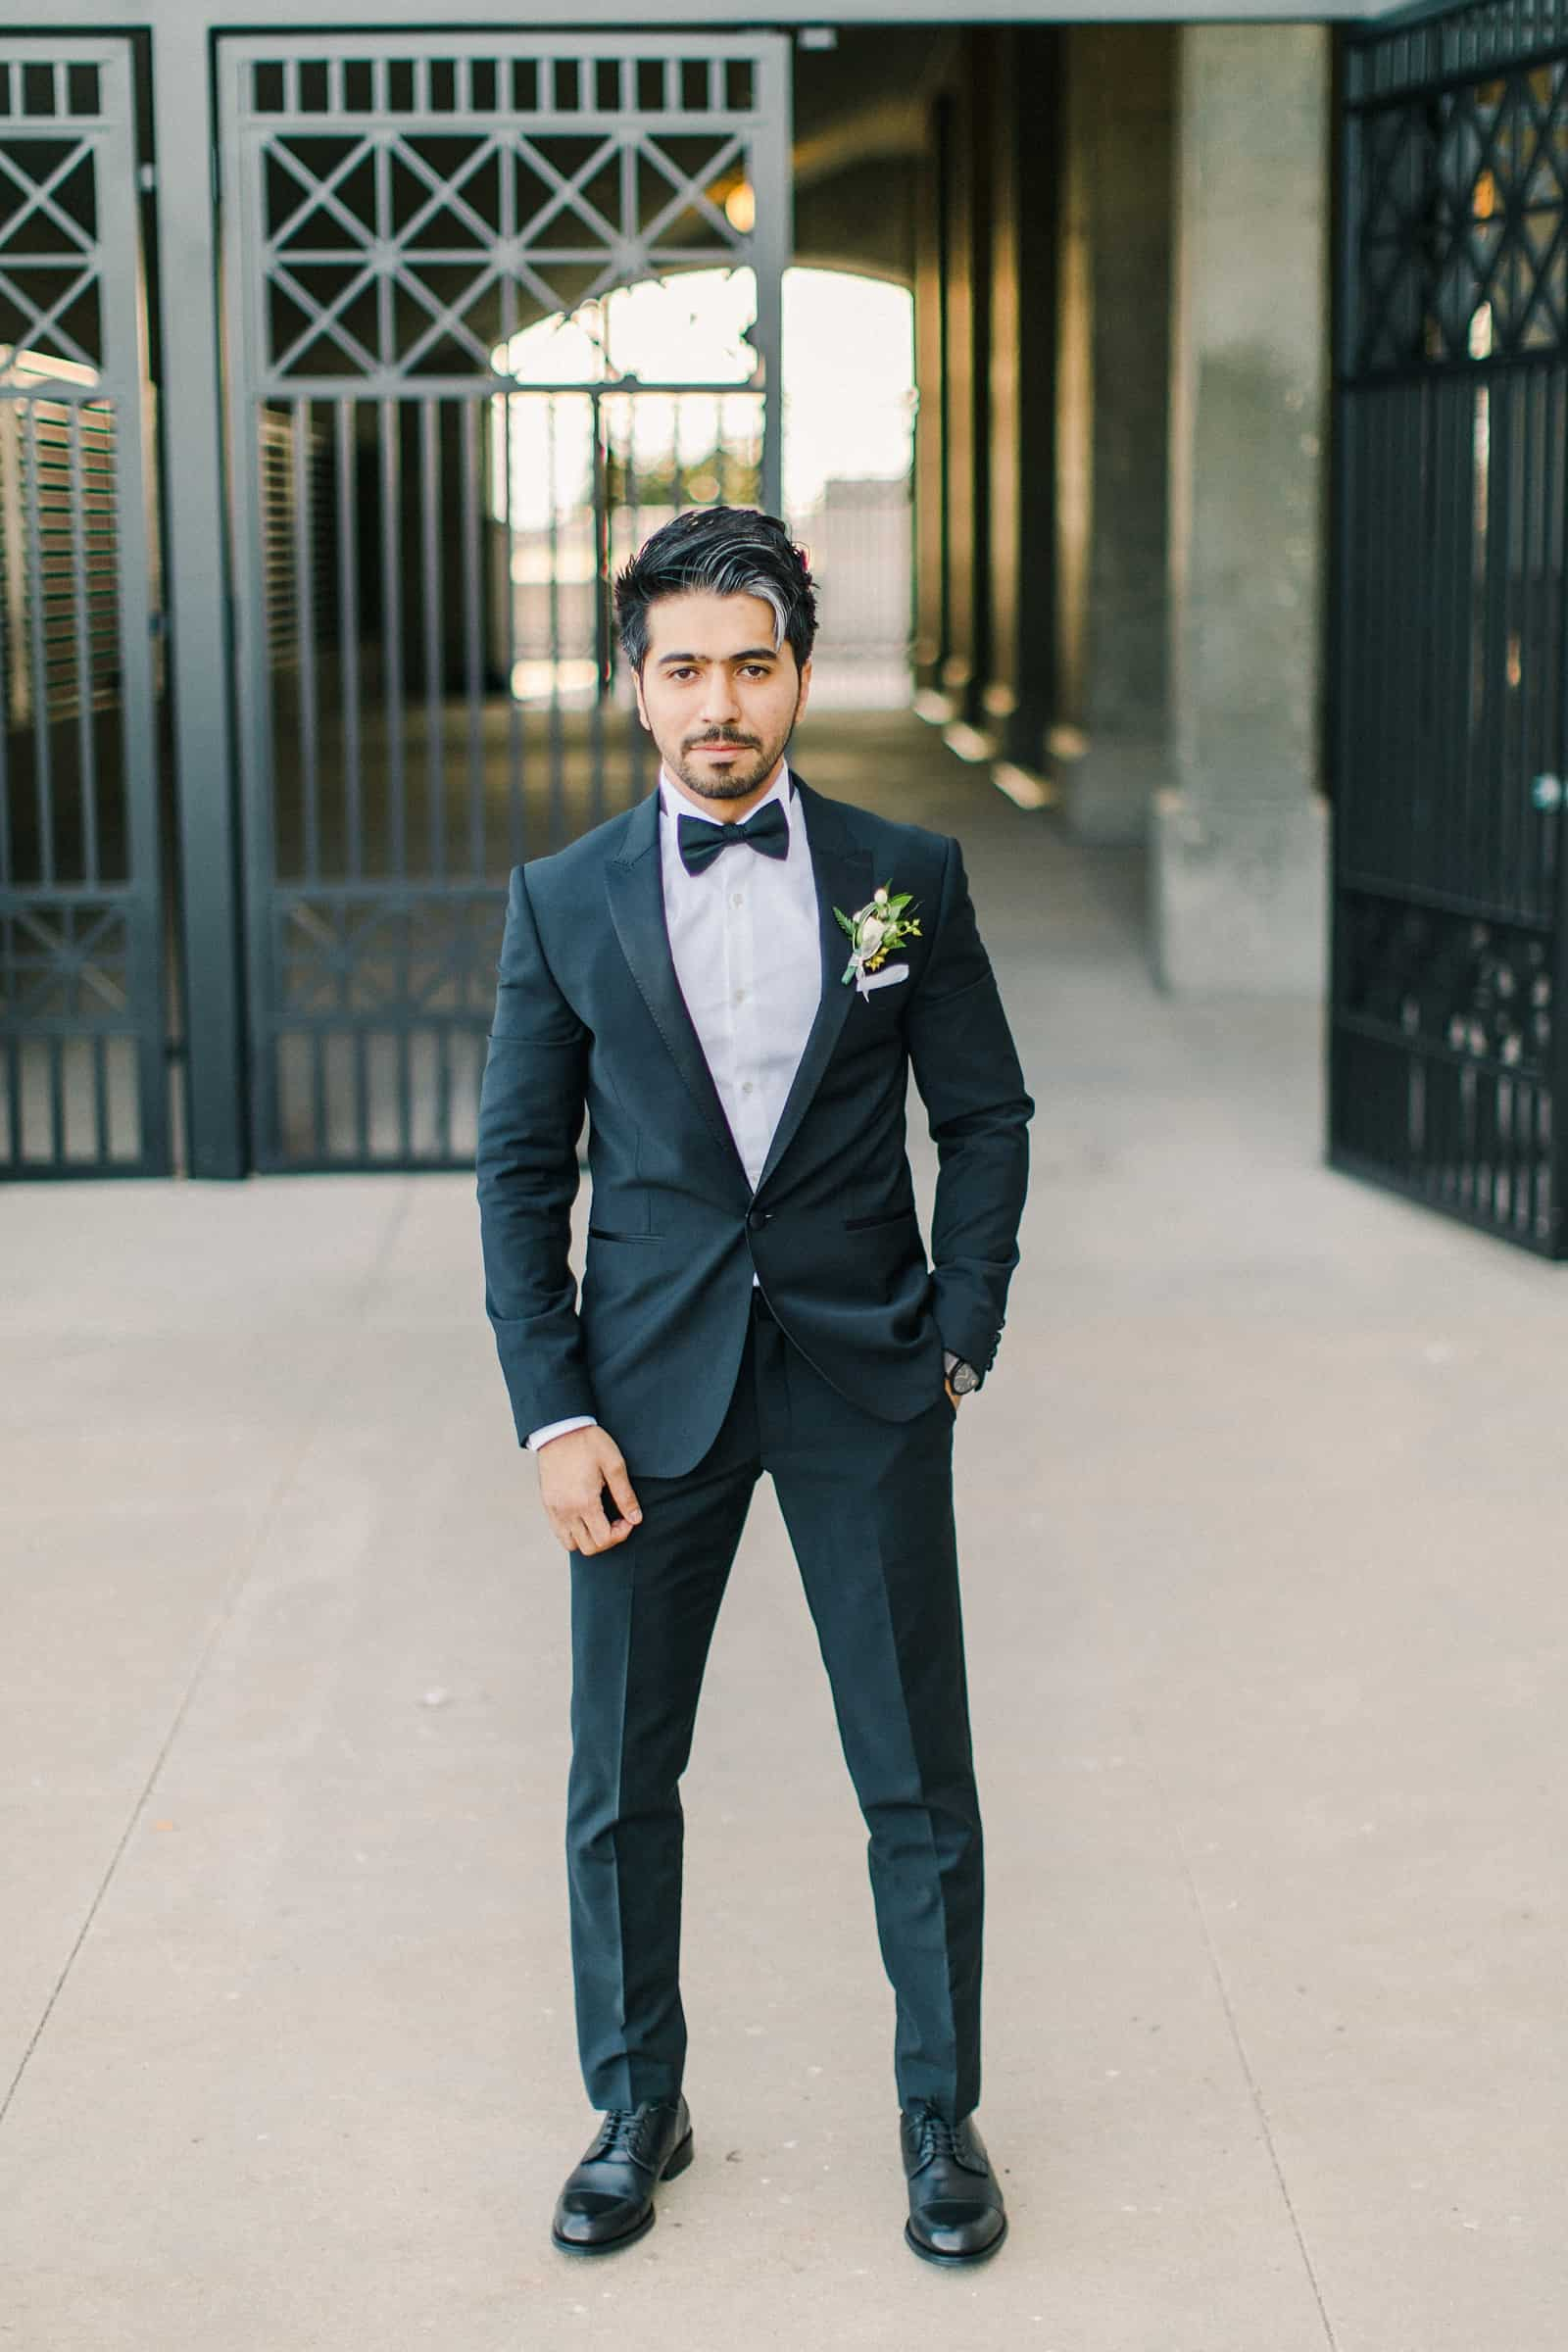 Palestinian Iranian Bride and Groom, Utah Wedding Photography at the Utah State Capitol, groom in classic black tux and black bow tie